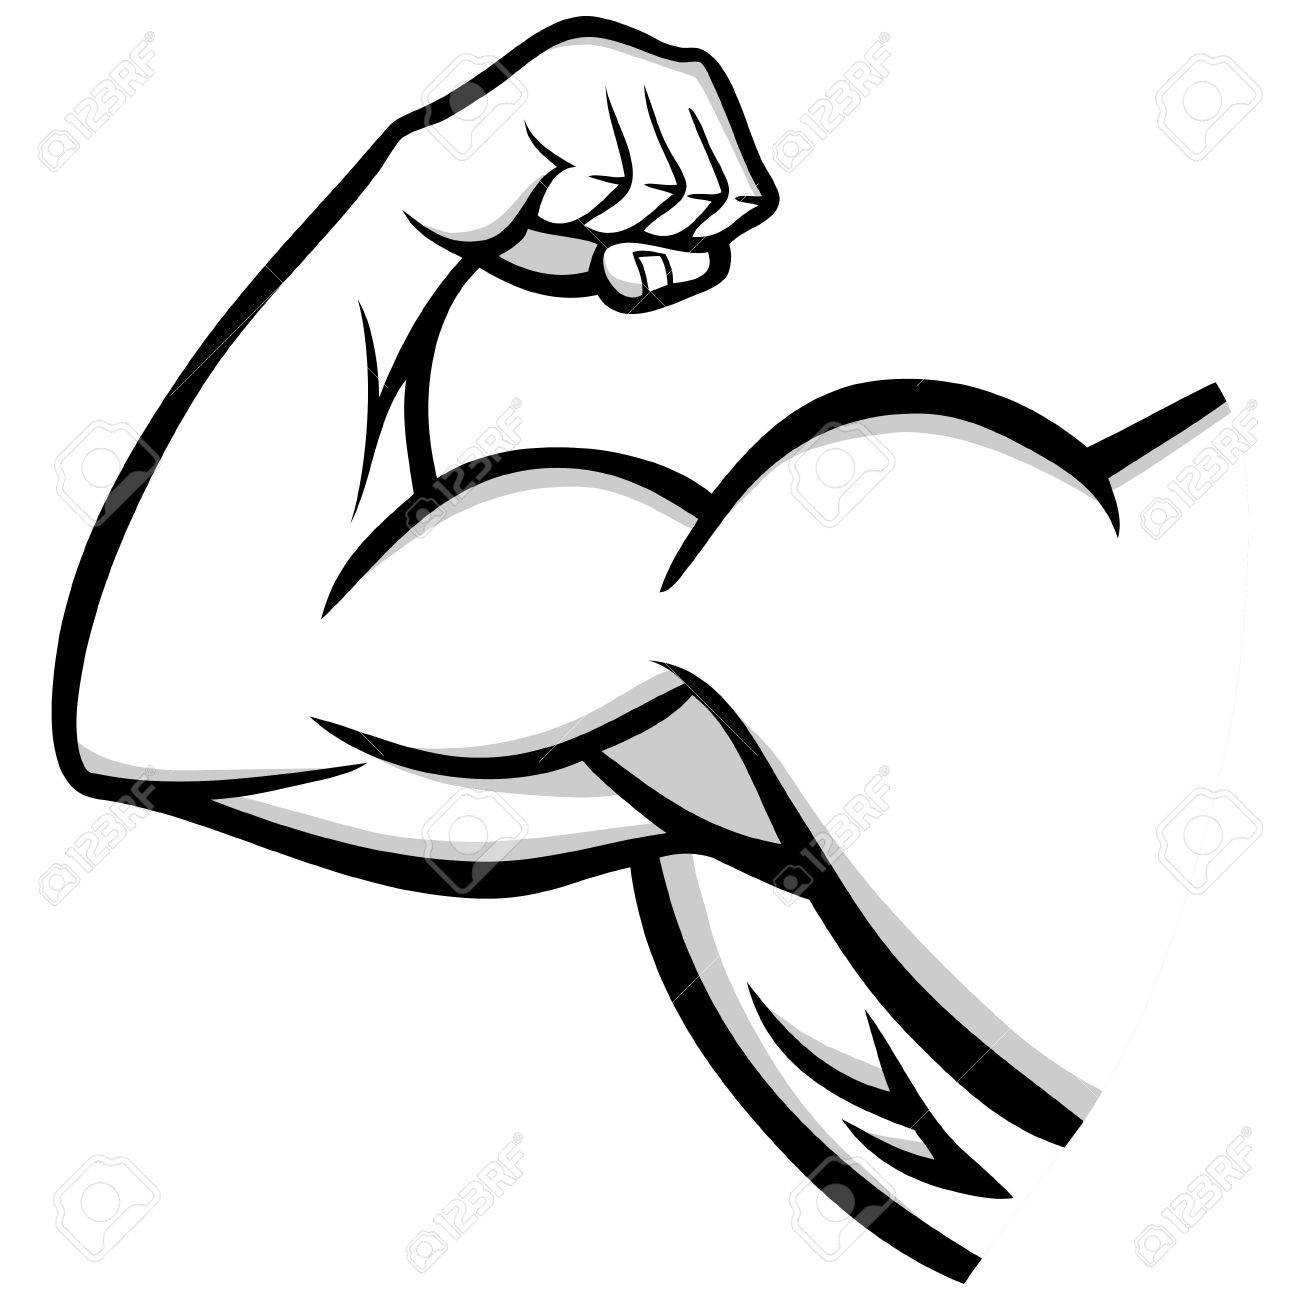 Strong arm drawing at. Arms clipart cartoon